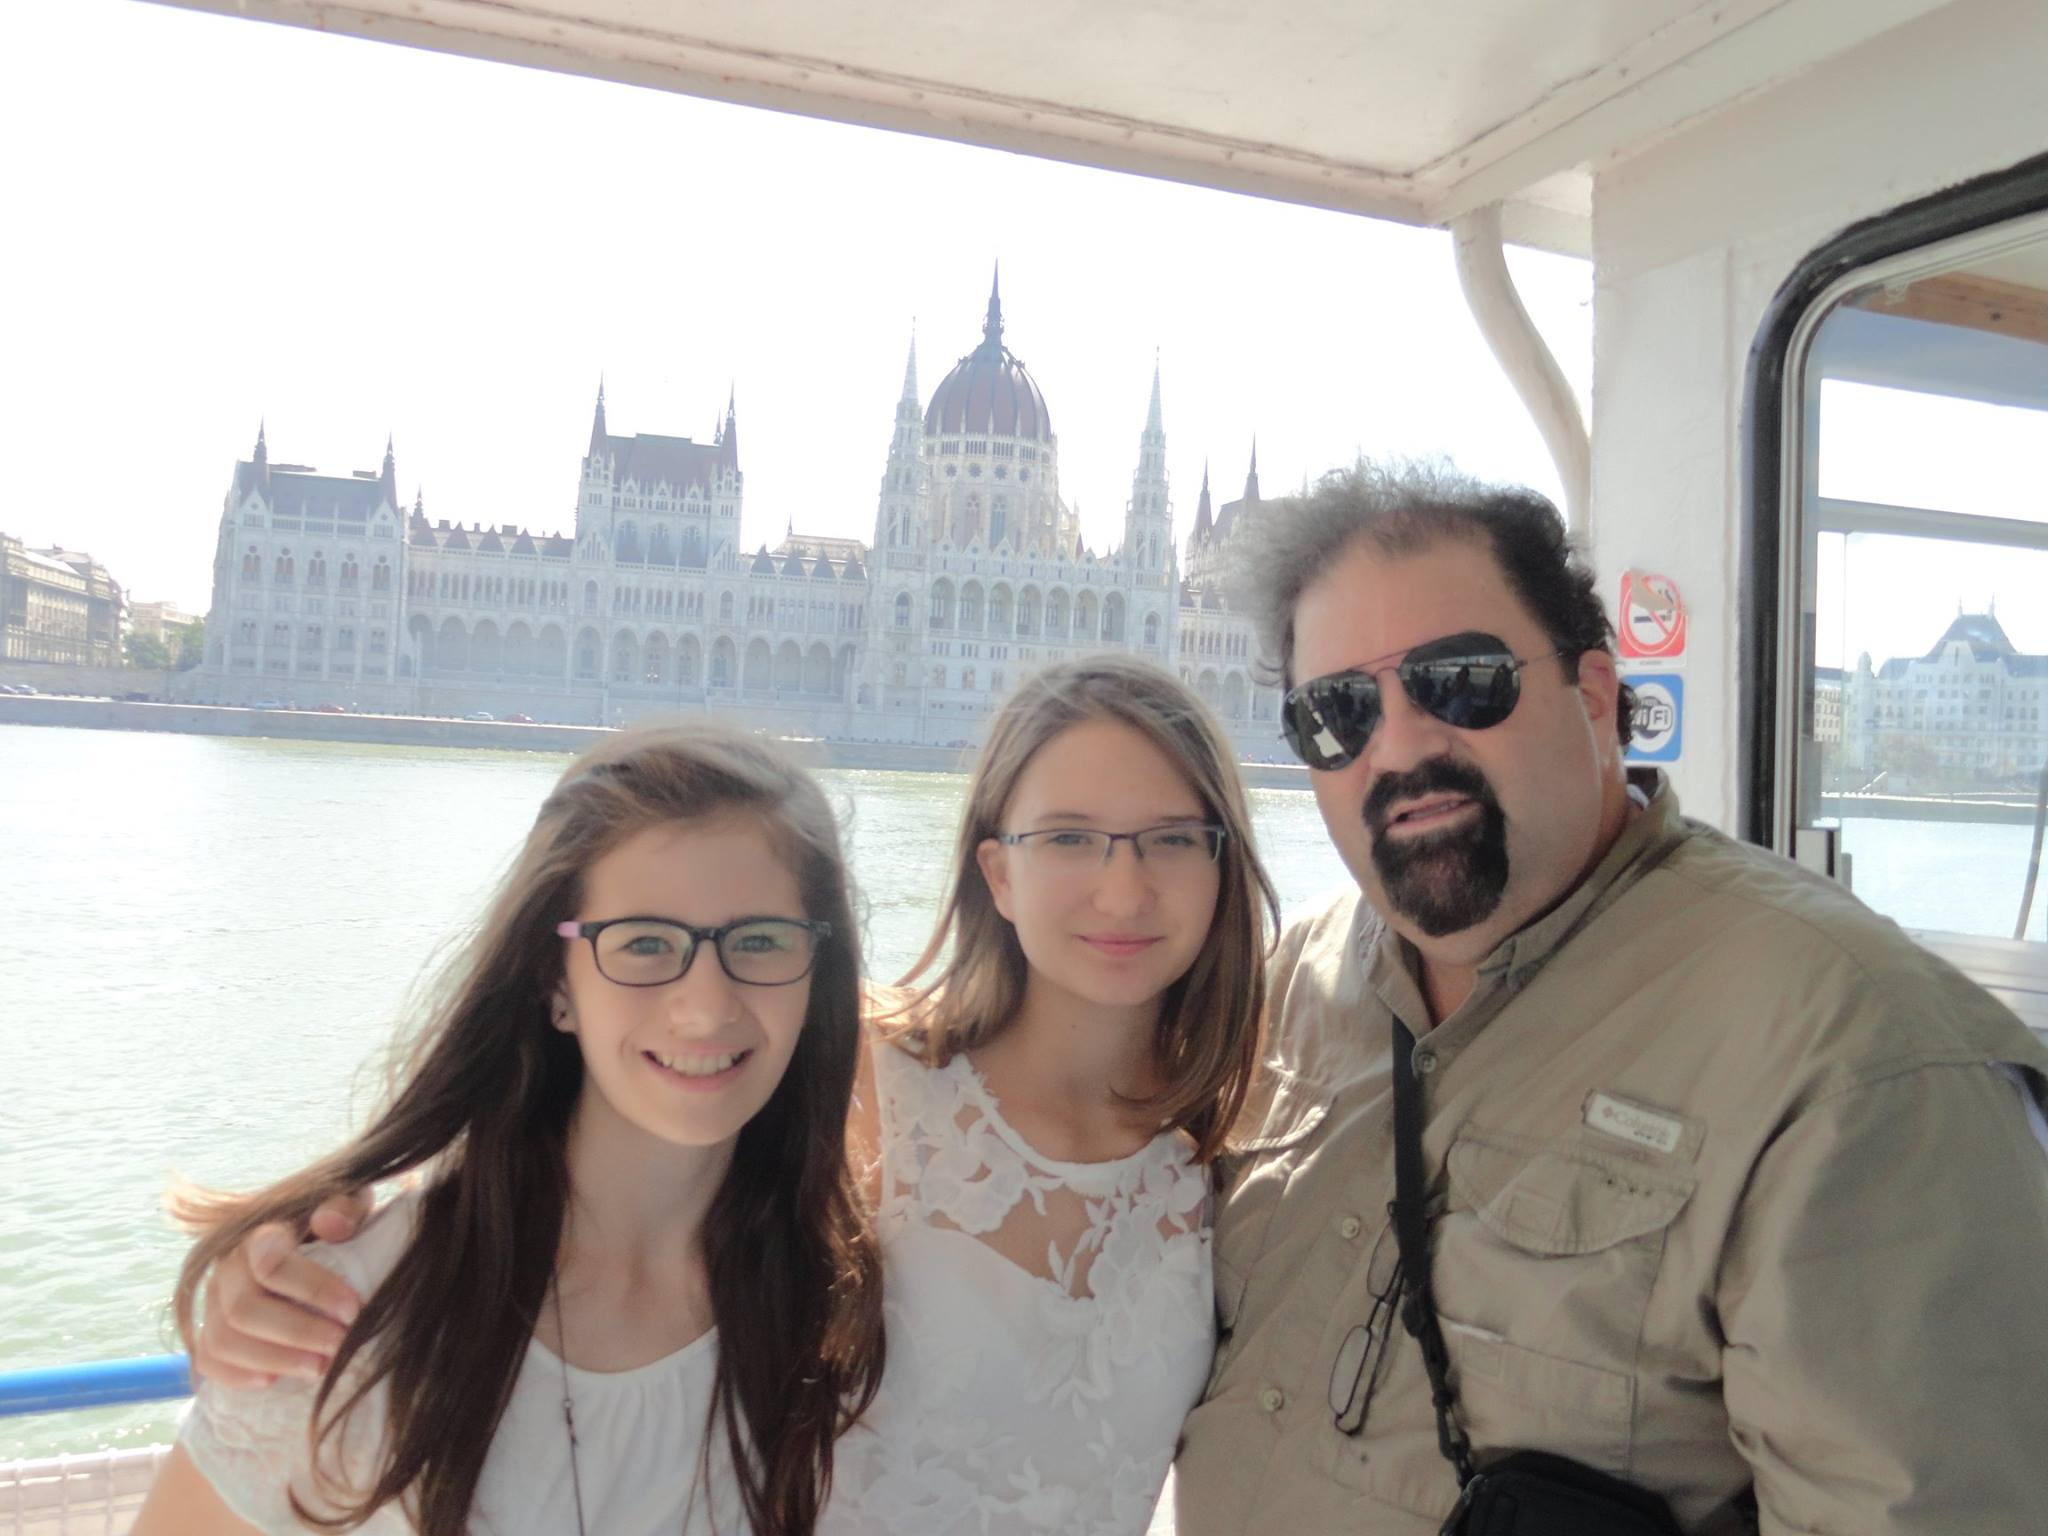 Randy with Futo girls on the Danube River